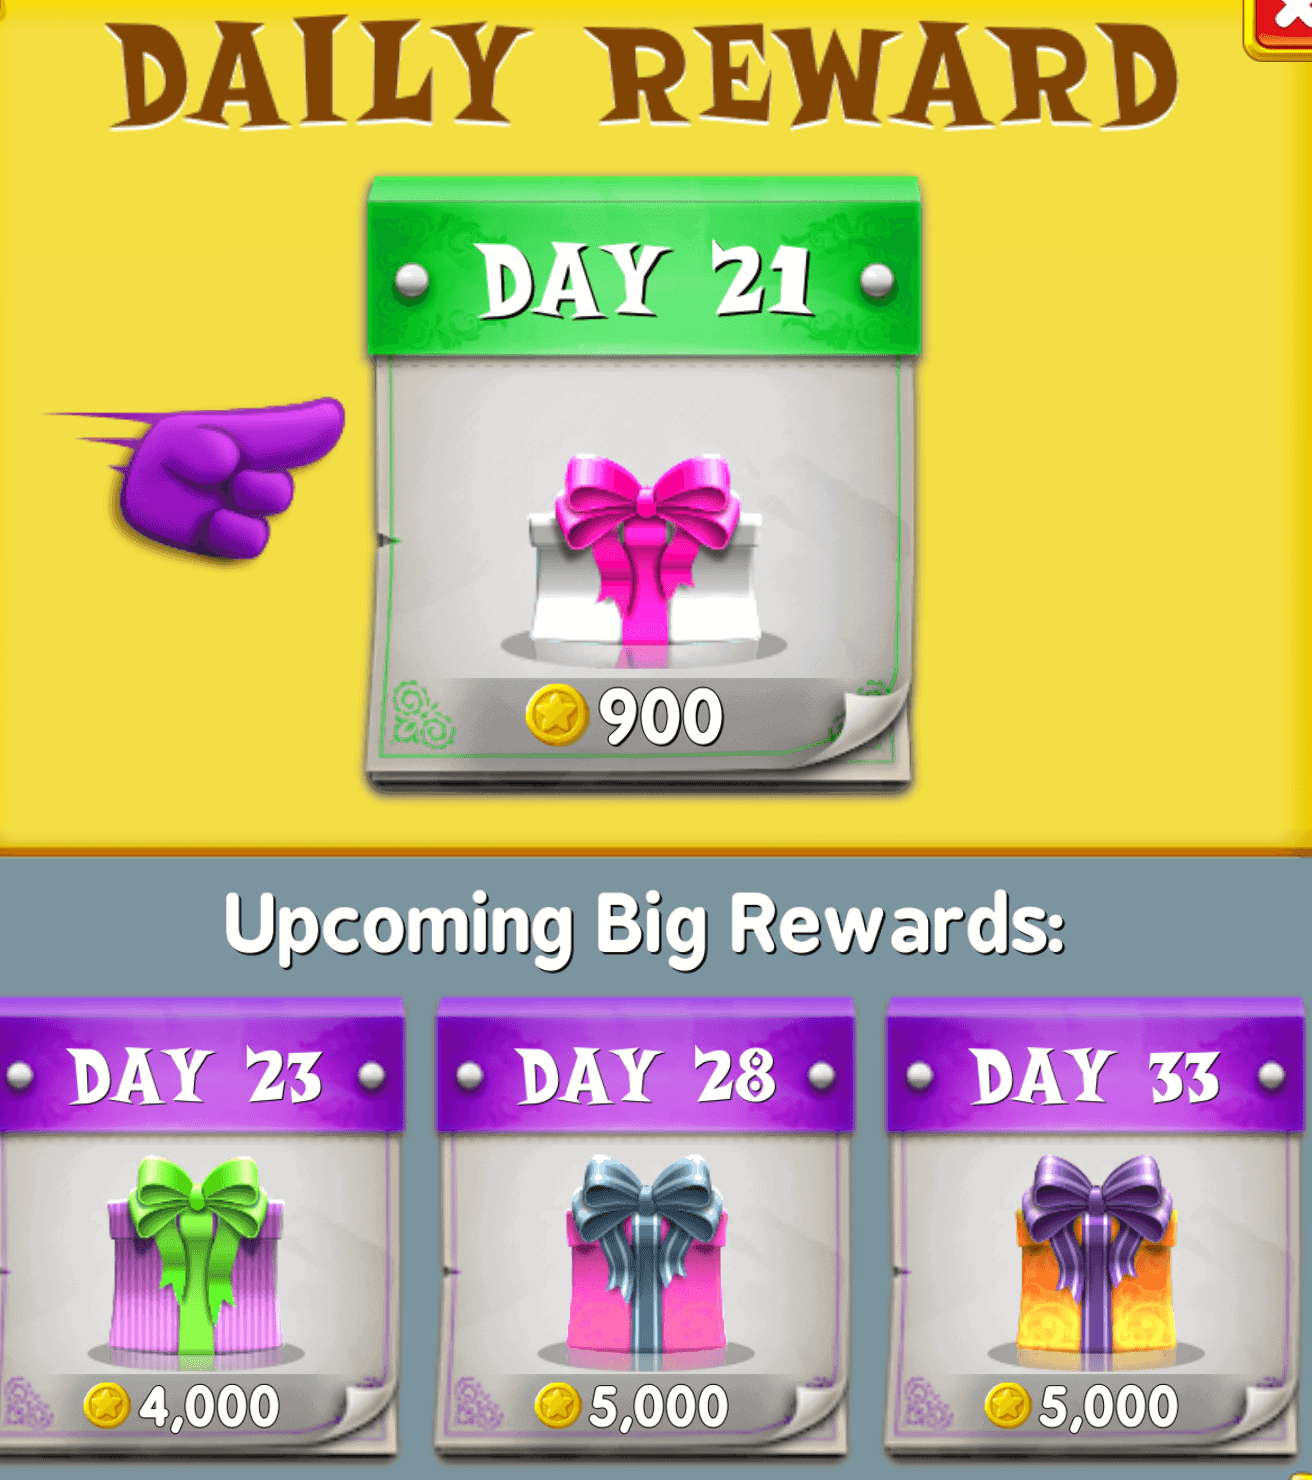 I earned 900 coins from this daily gift.